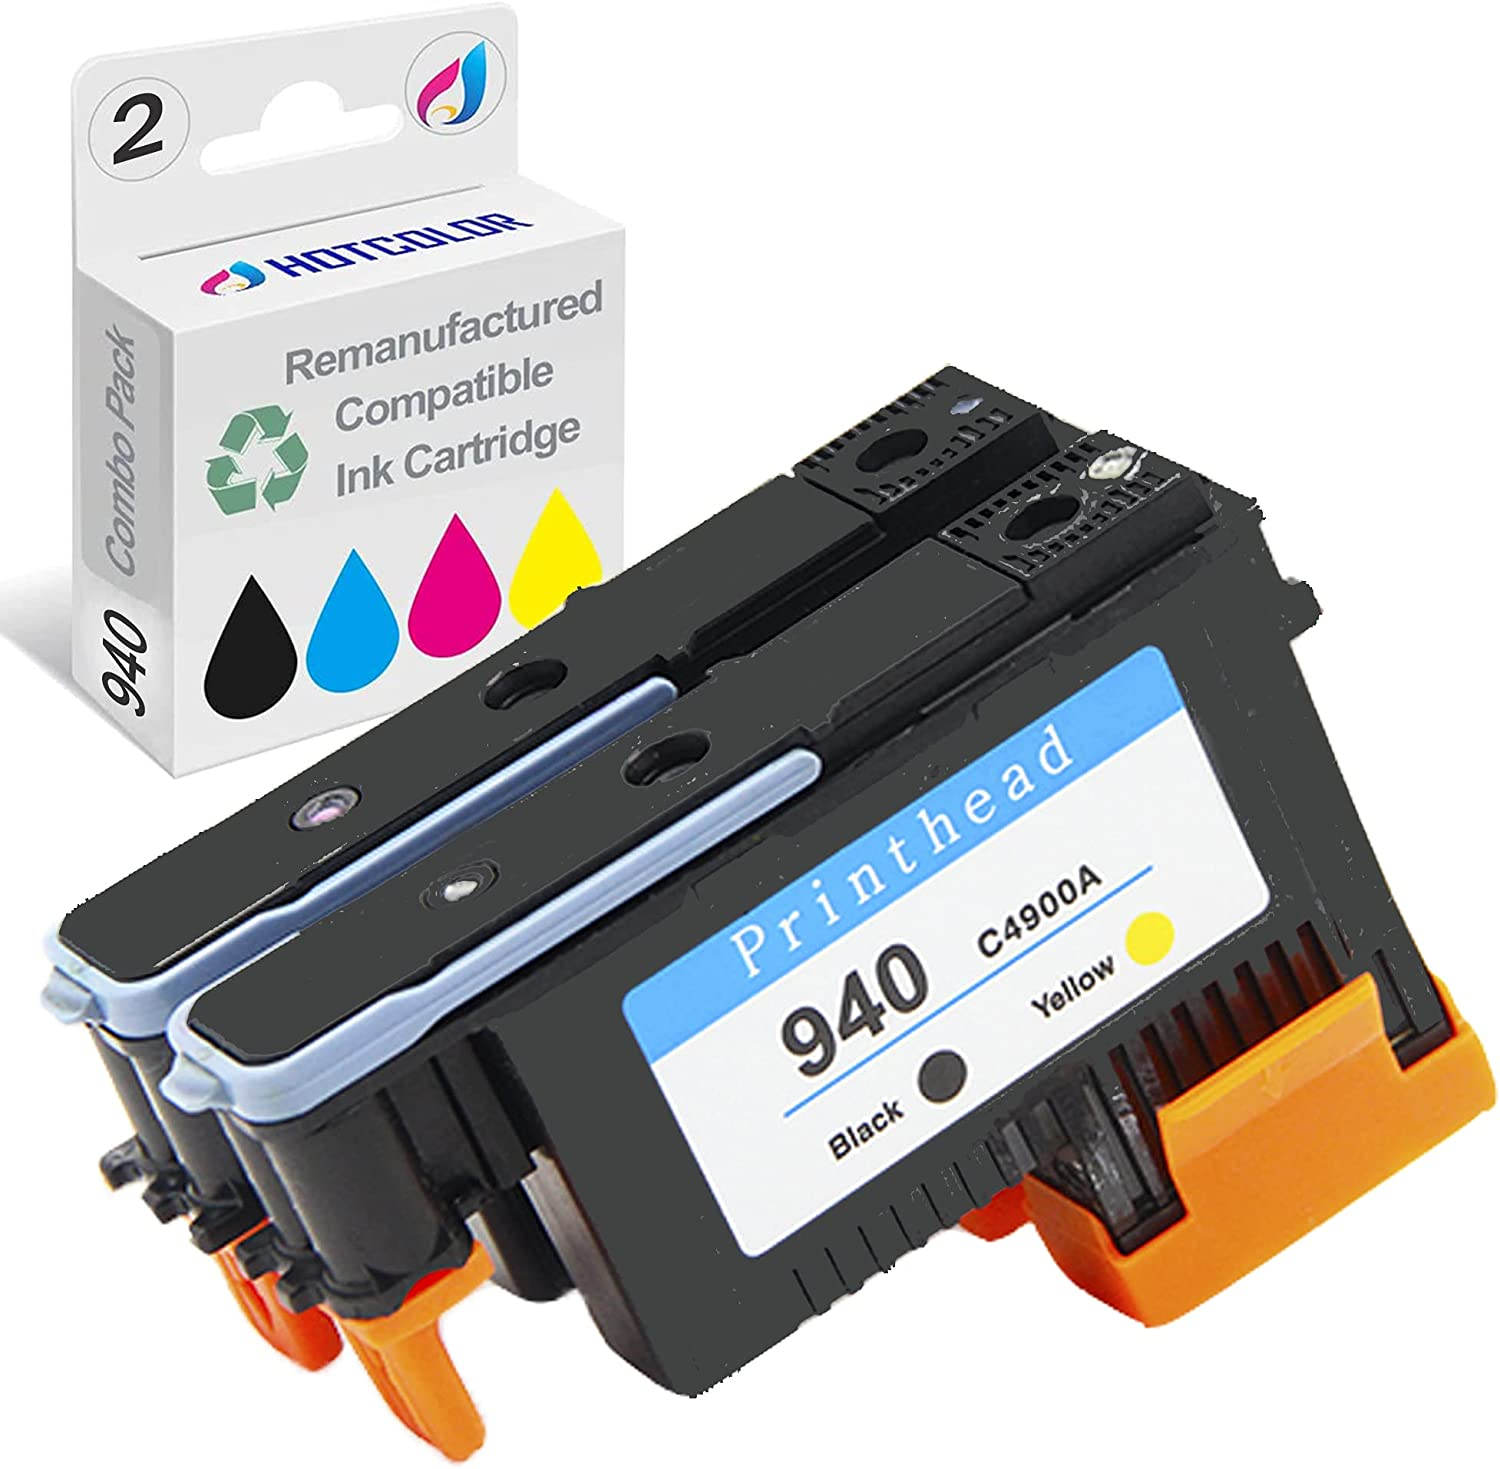 HOTCOLOR 8500a printhead Replacement for HP 940 Printhead C4900A C4901A for HP 8500a printhead Officejet pro 8000 8500 (Black/Yellow Cyan/Magenta)